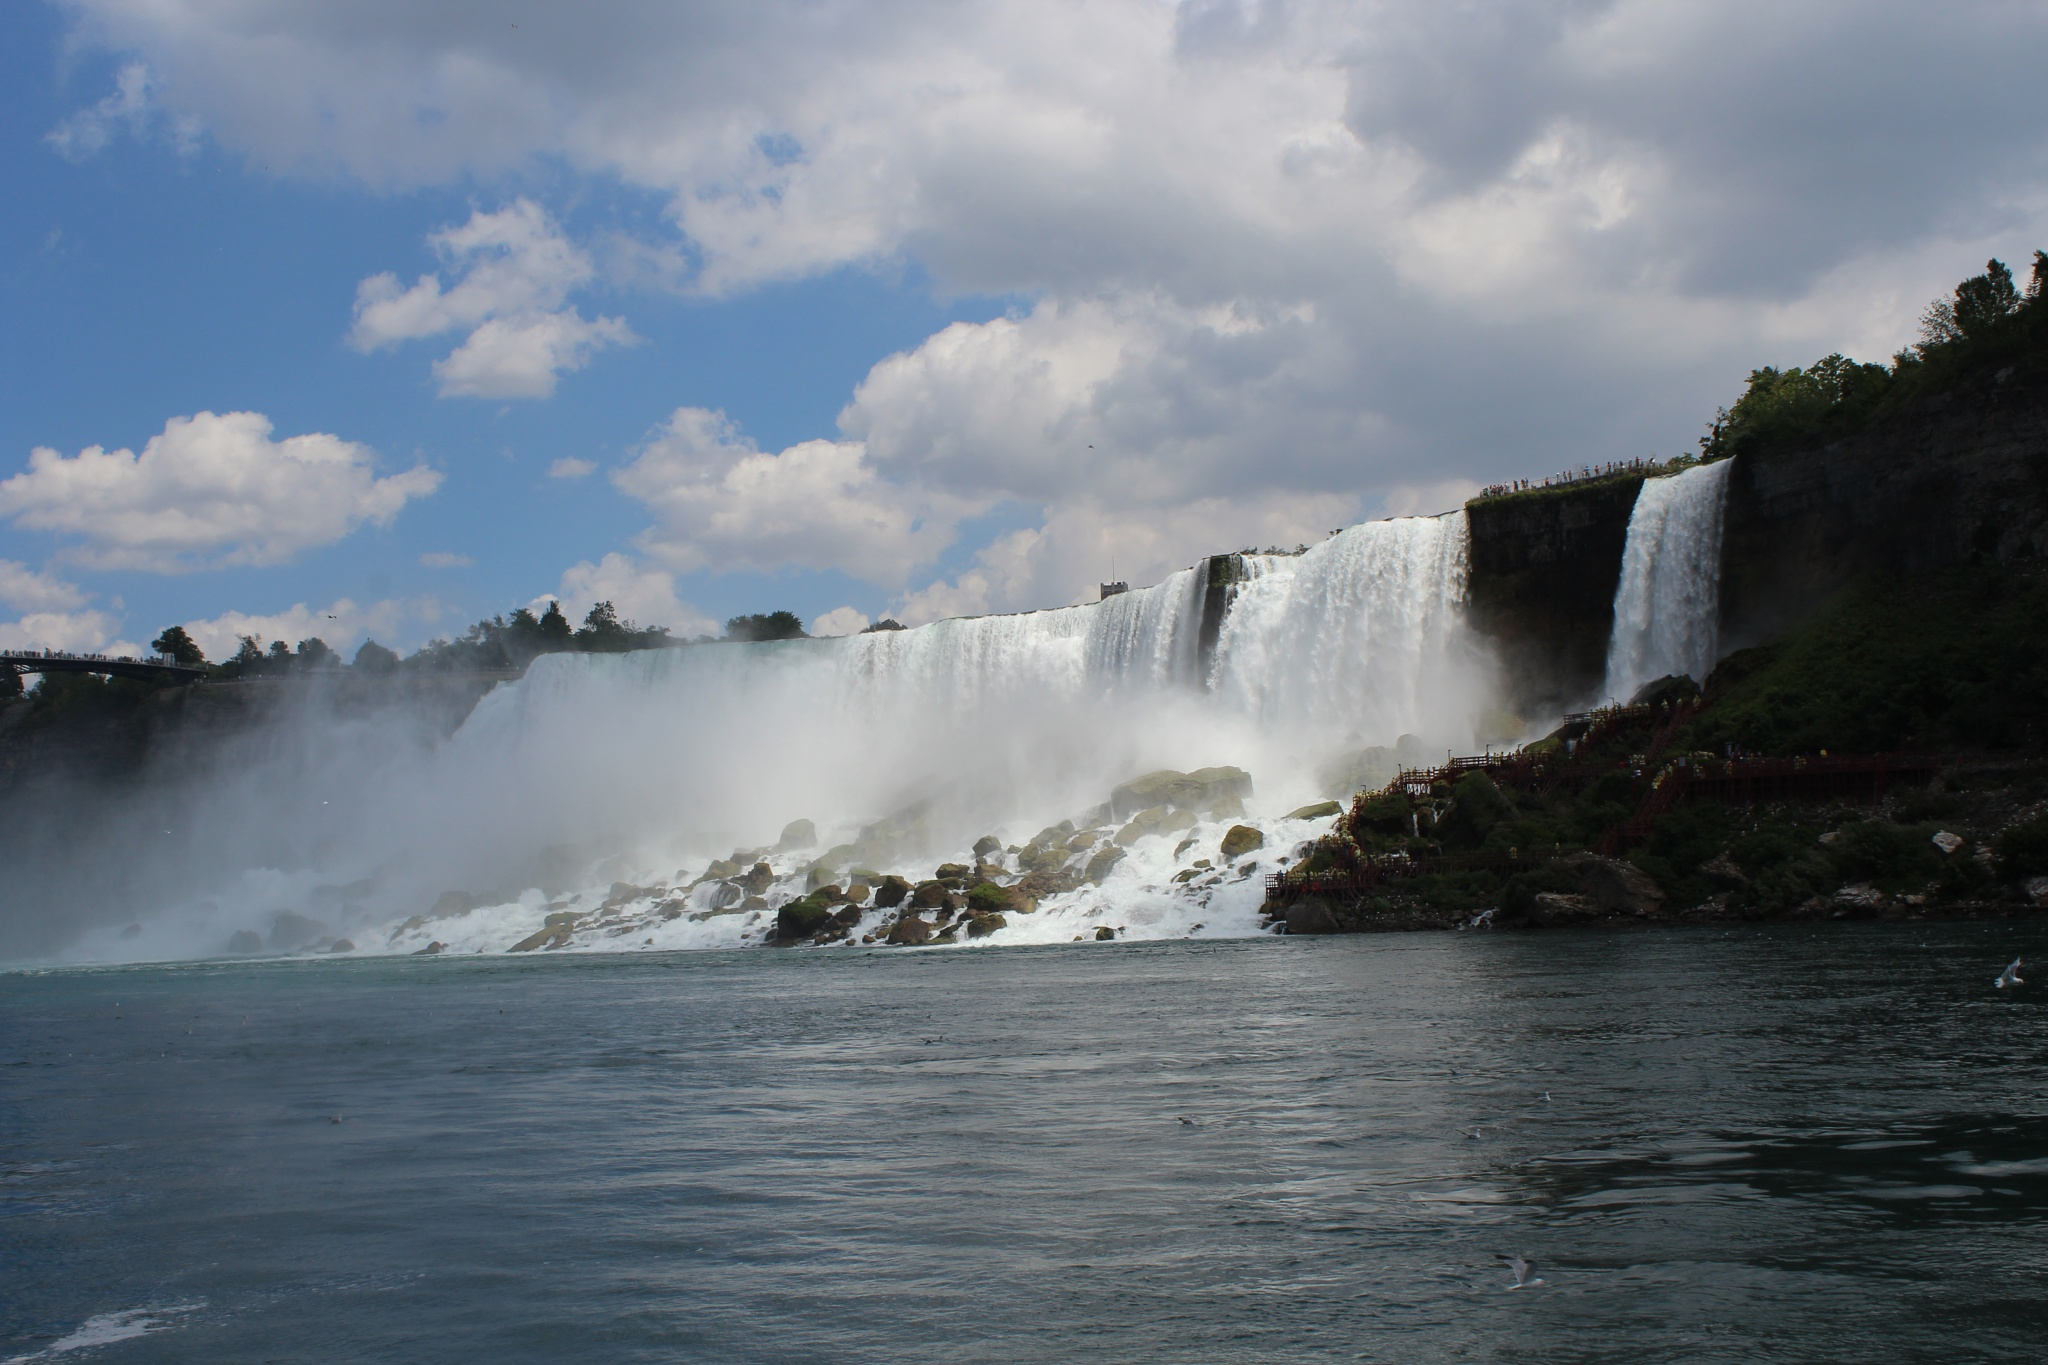 View of Niagara Falls by Lori Enfield